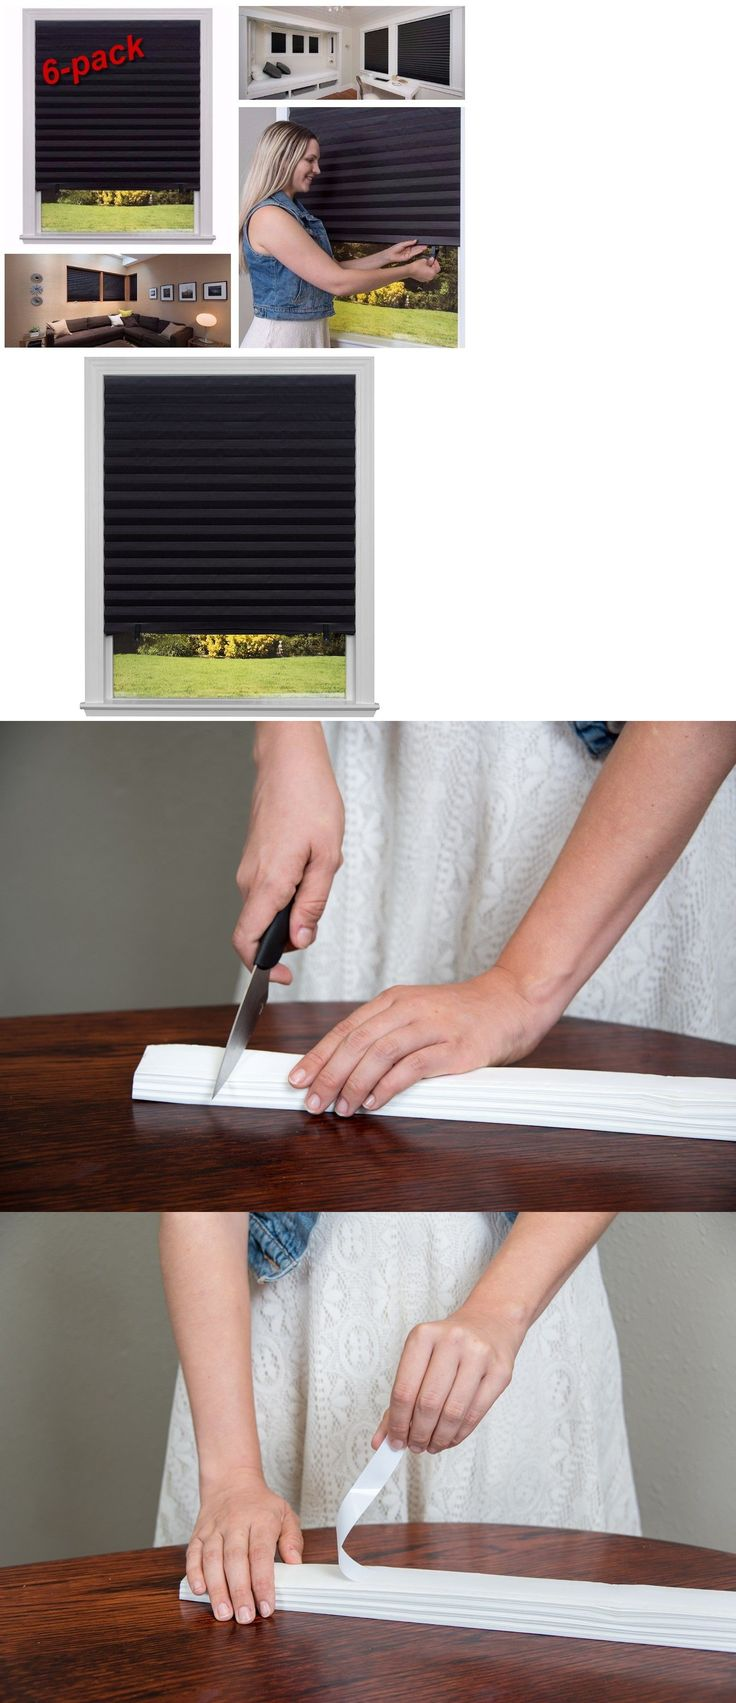 Blinds and Shades 20585: Blackout Pleated Paper Shade Home Window 6-Pack 36 X 72 Cordless Pull Down New -> BUY IT NOW ONLY: $36.24 on eBay!